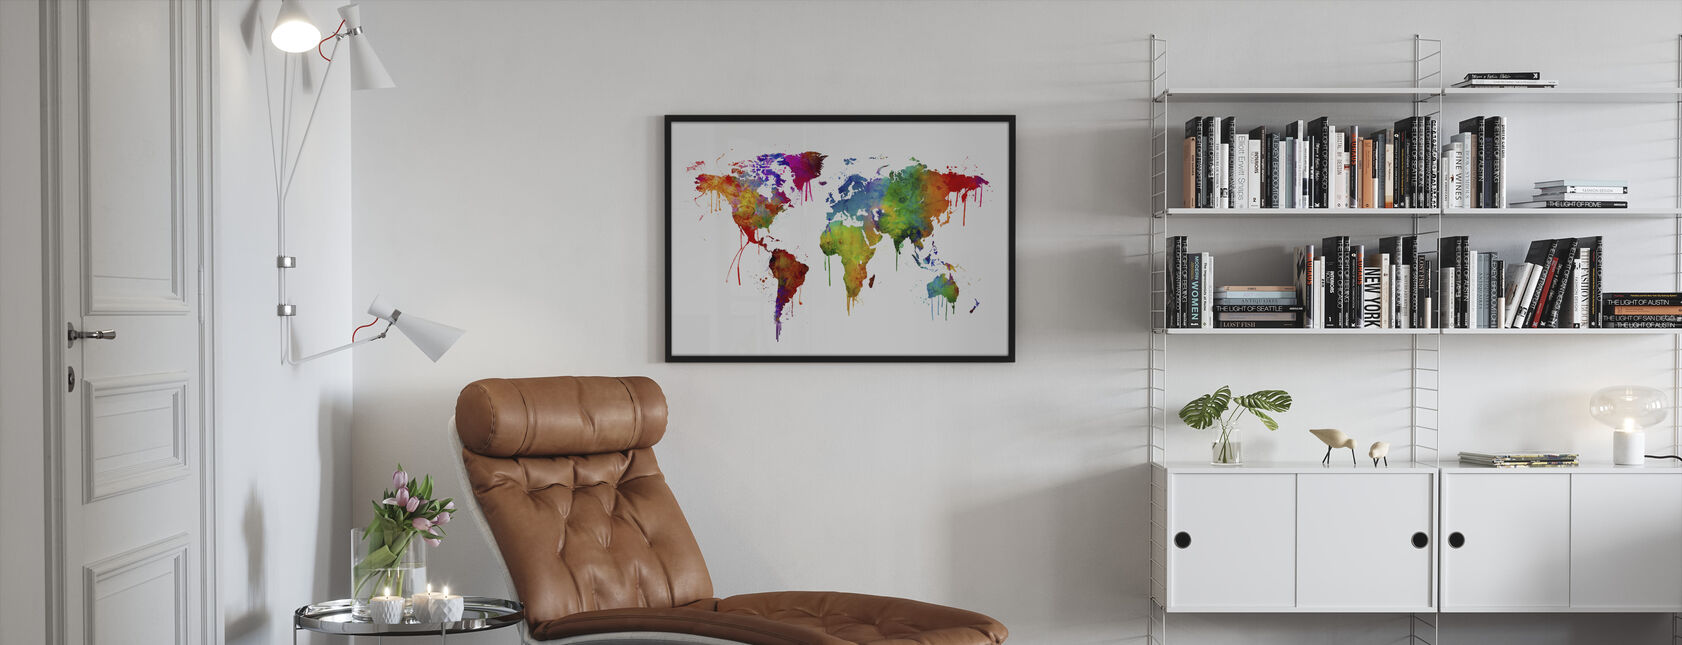 Watercolour World Map - Framed print - Living Room